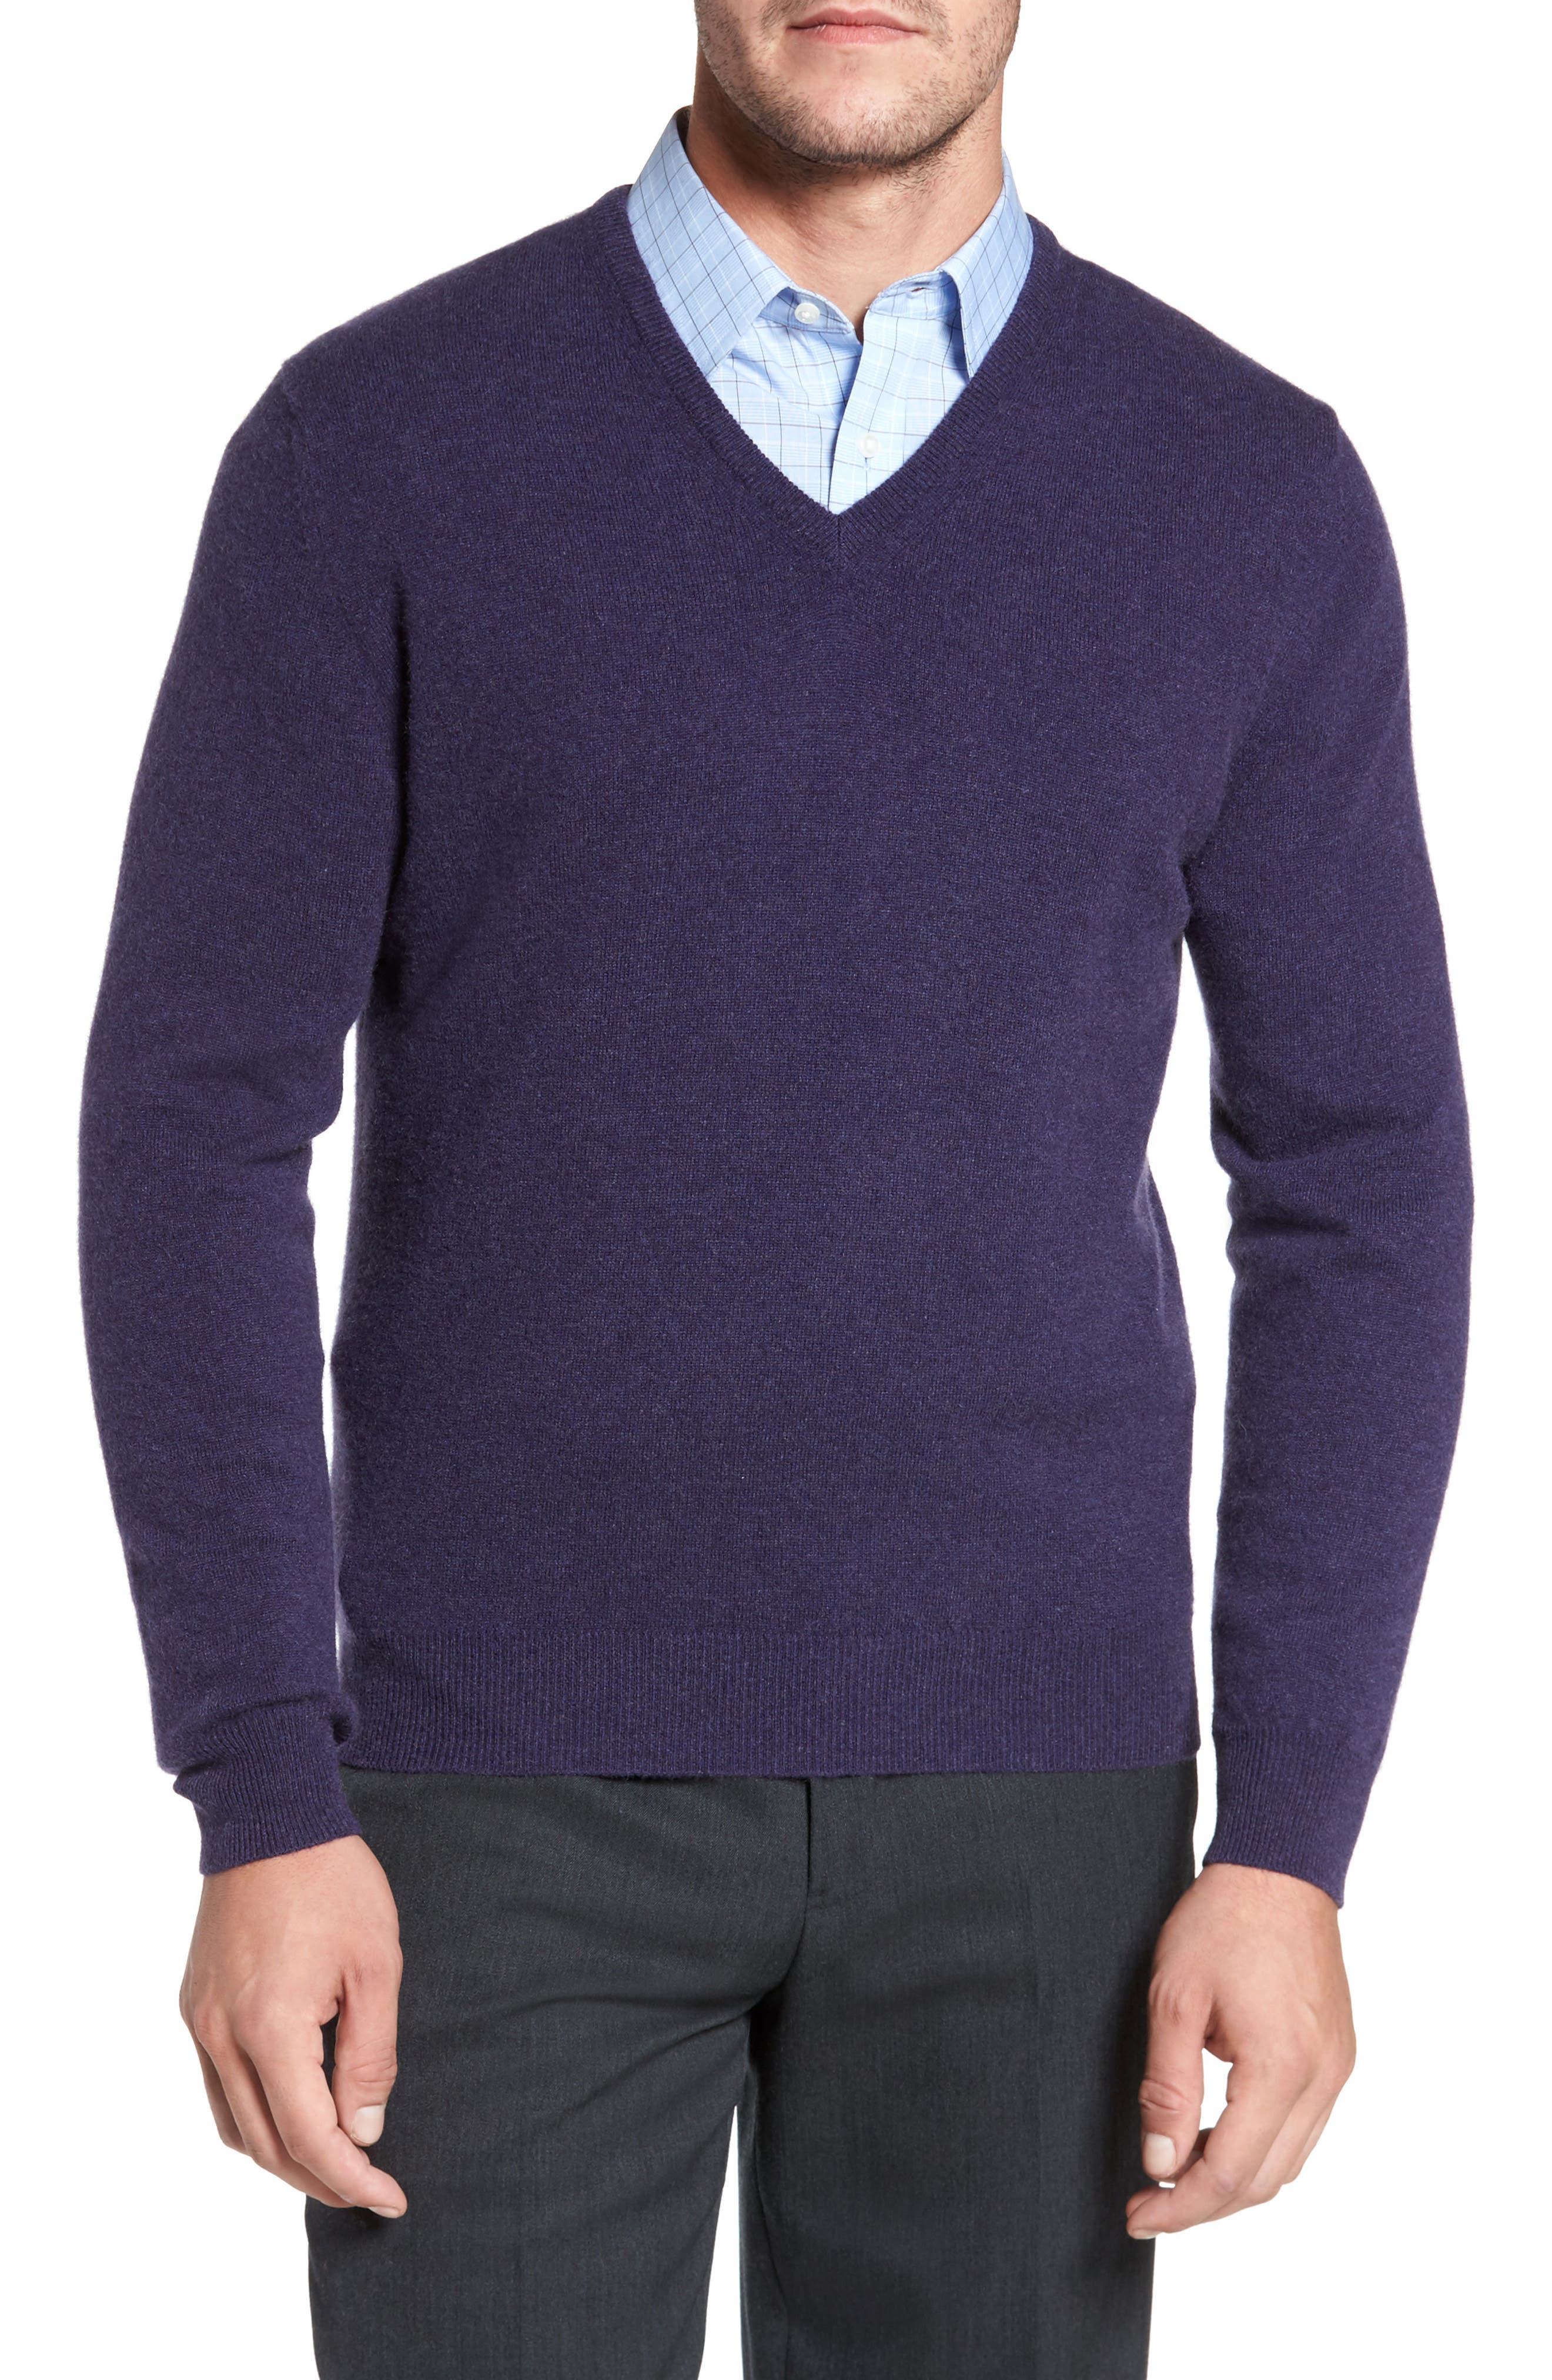 Main Image - David Donahue Cashmere V-Neck Sweater